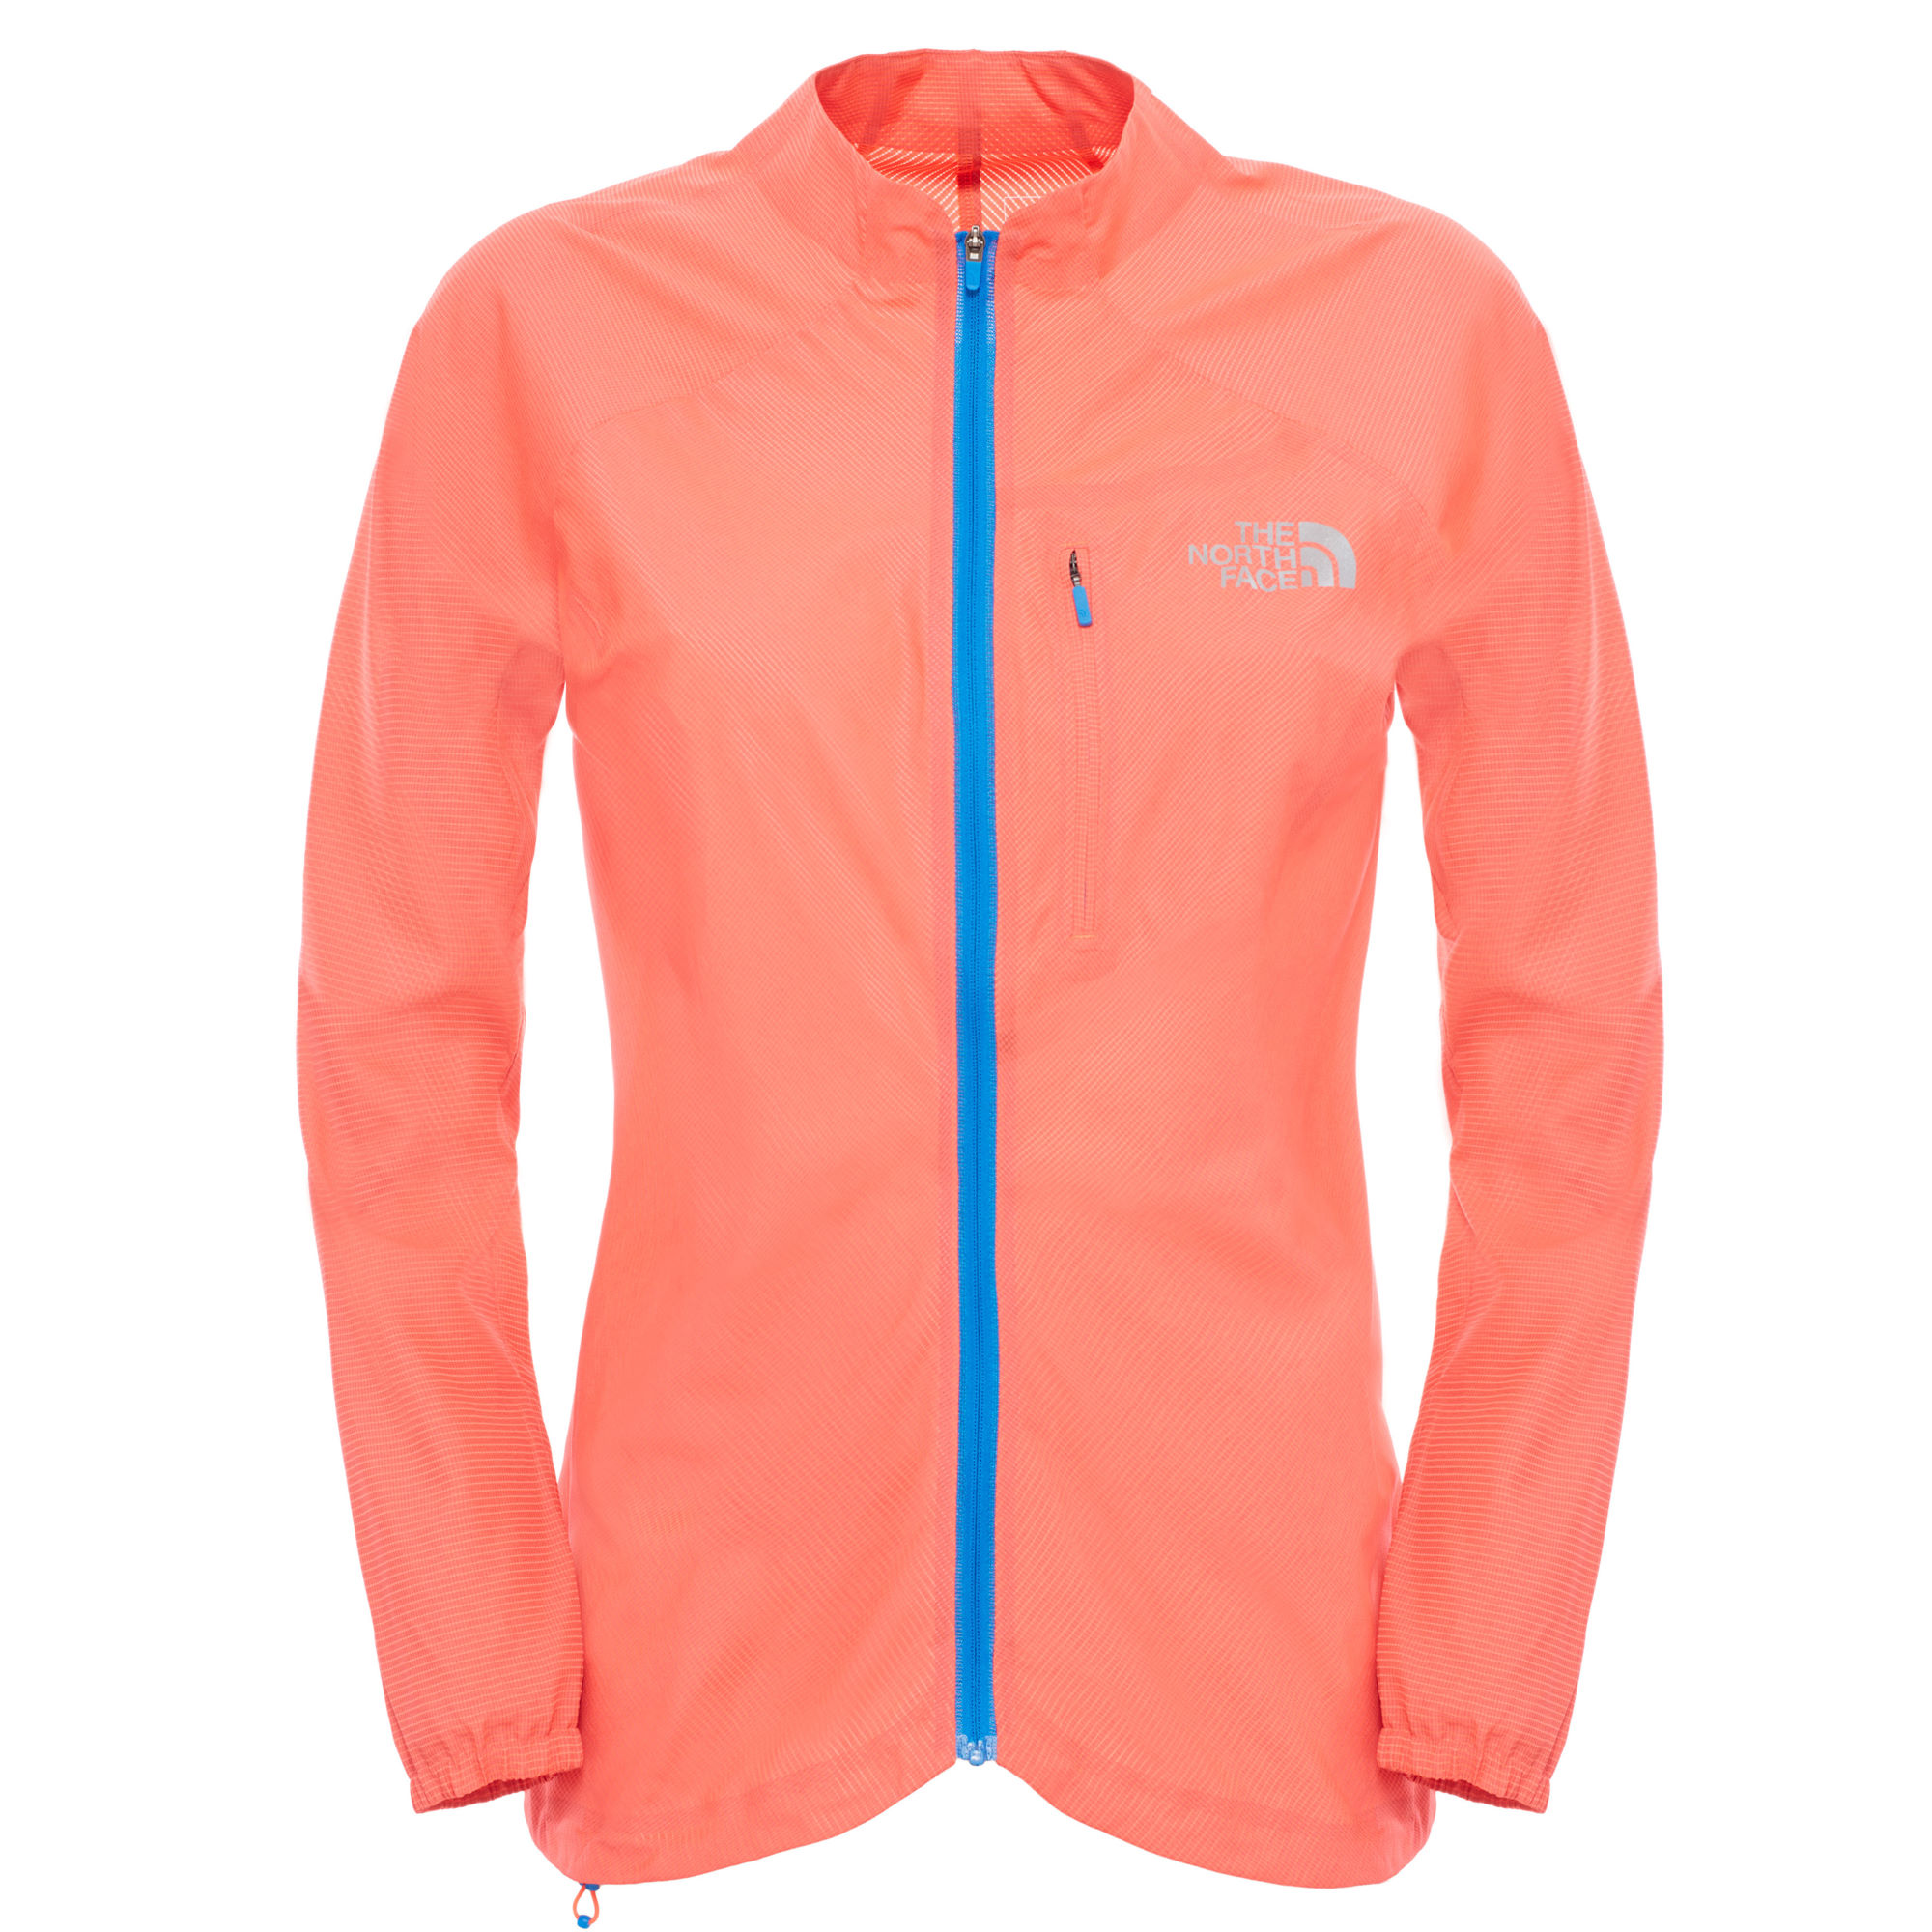 Vestes de running coupe vent the north face women 39 s flight series vent jacket ss16 - Coupe vent north face femme ...